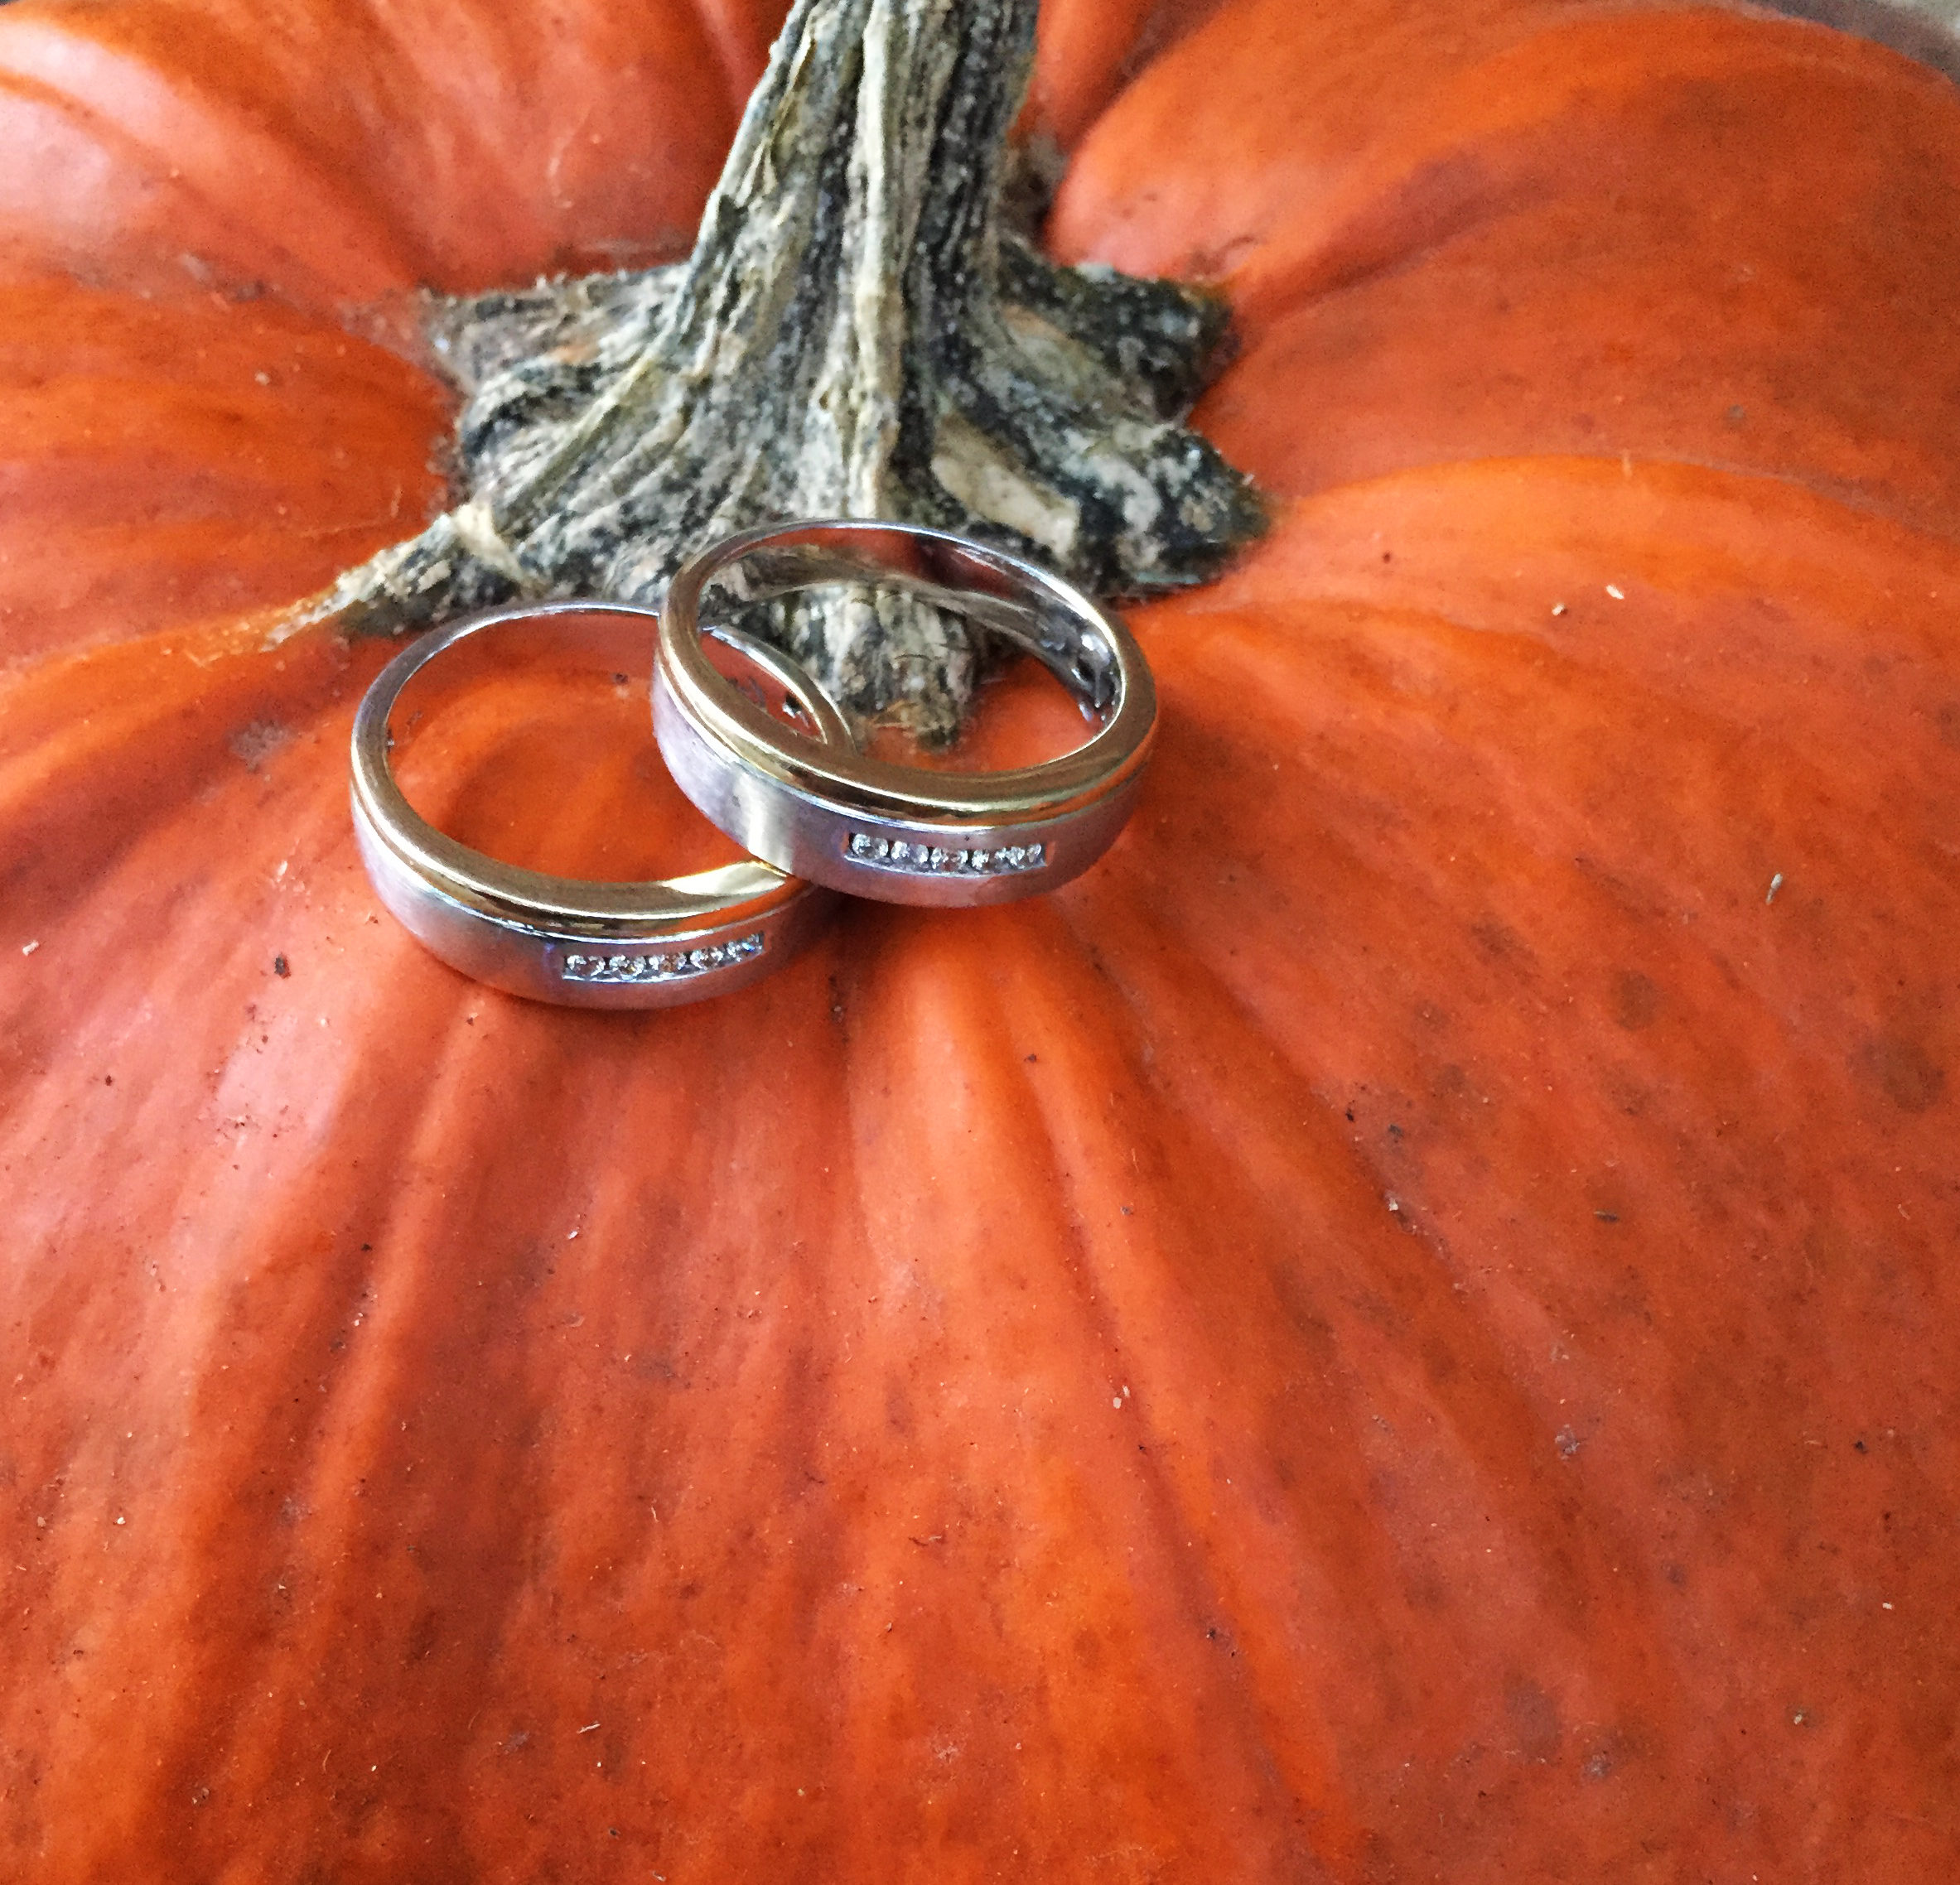 Engayged: The Proposal and Ring